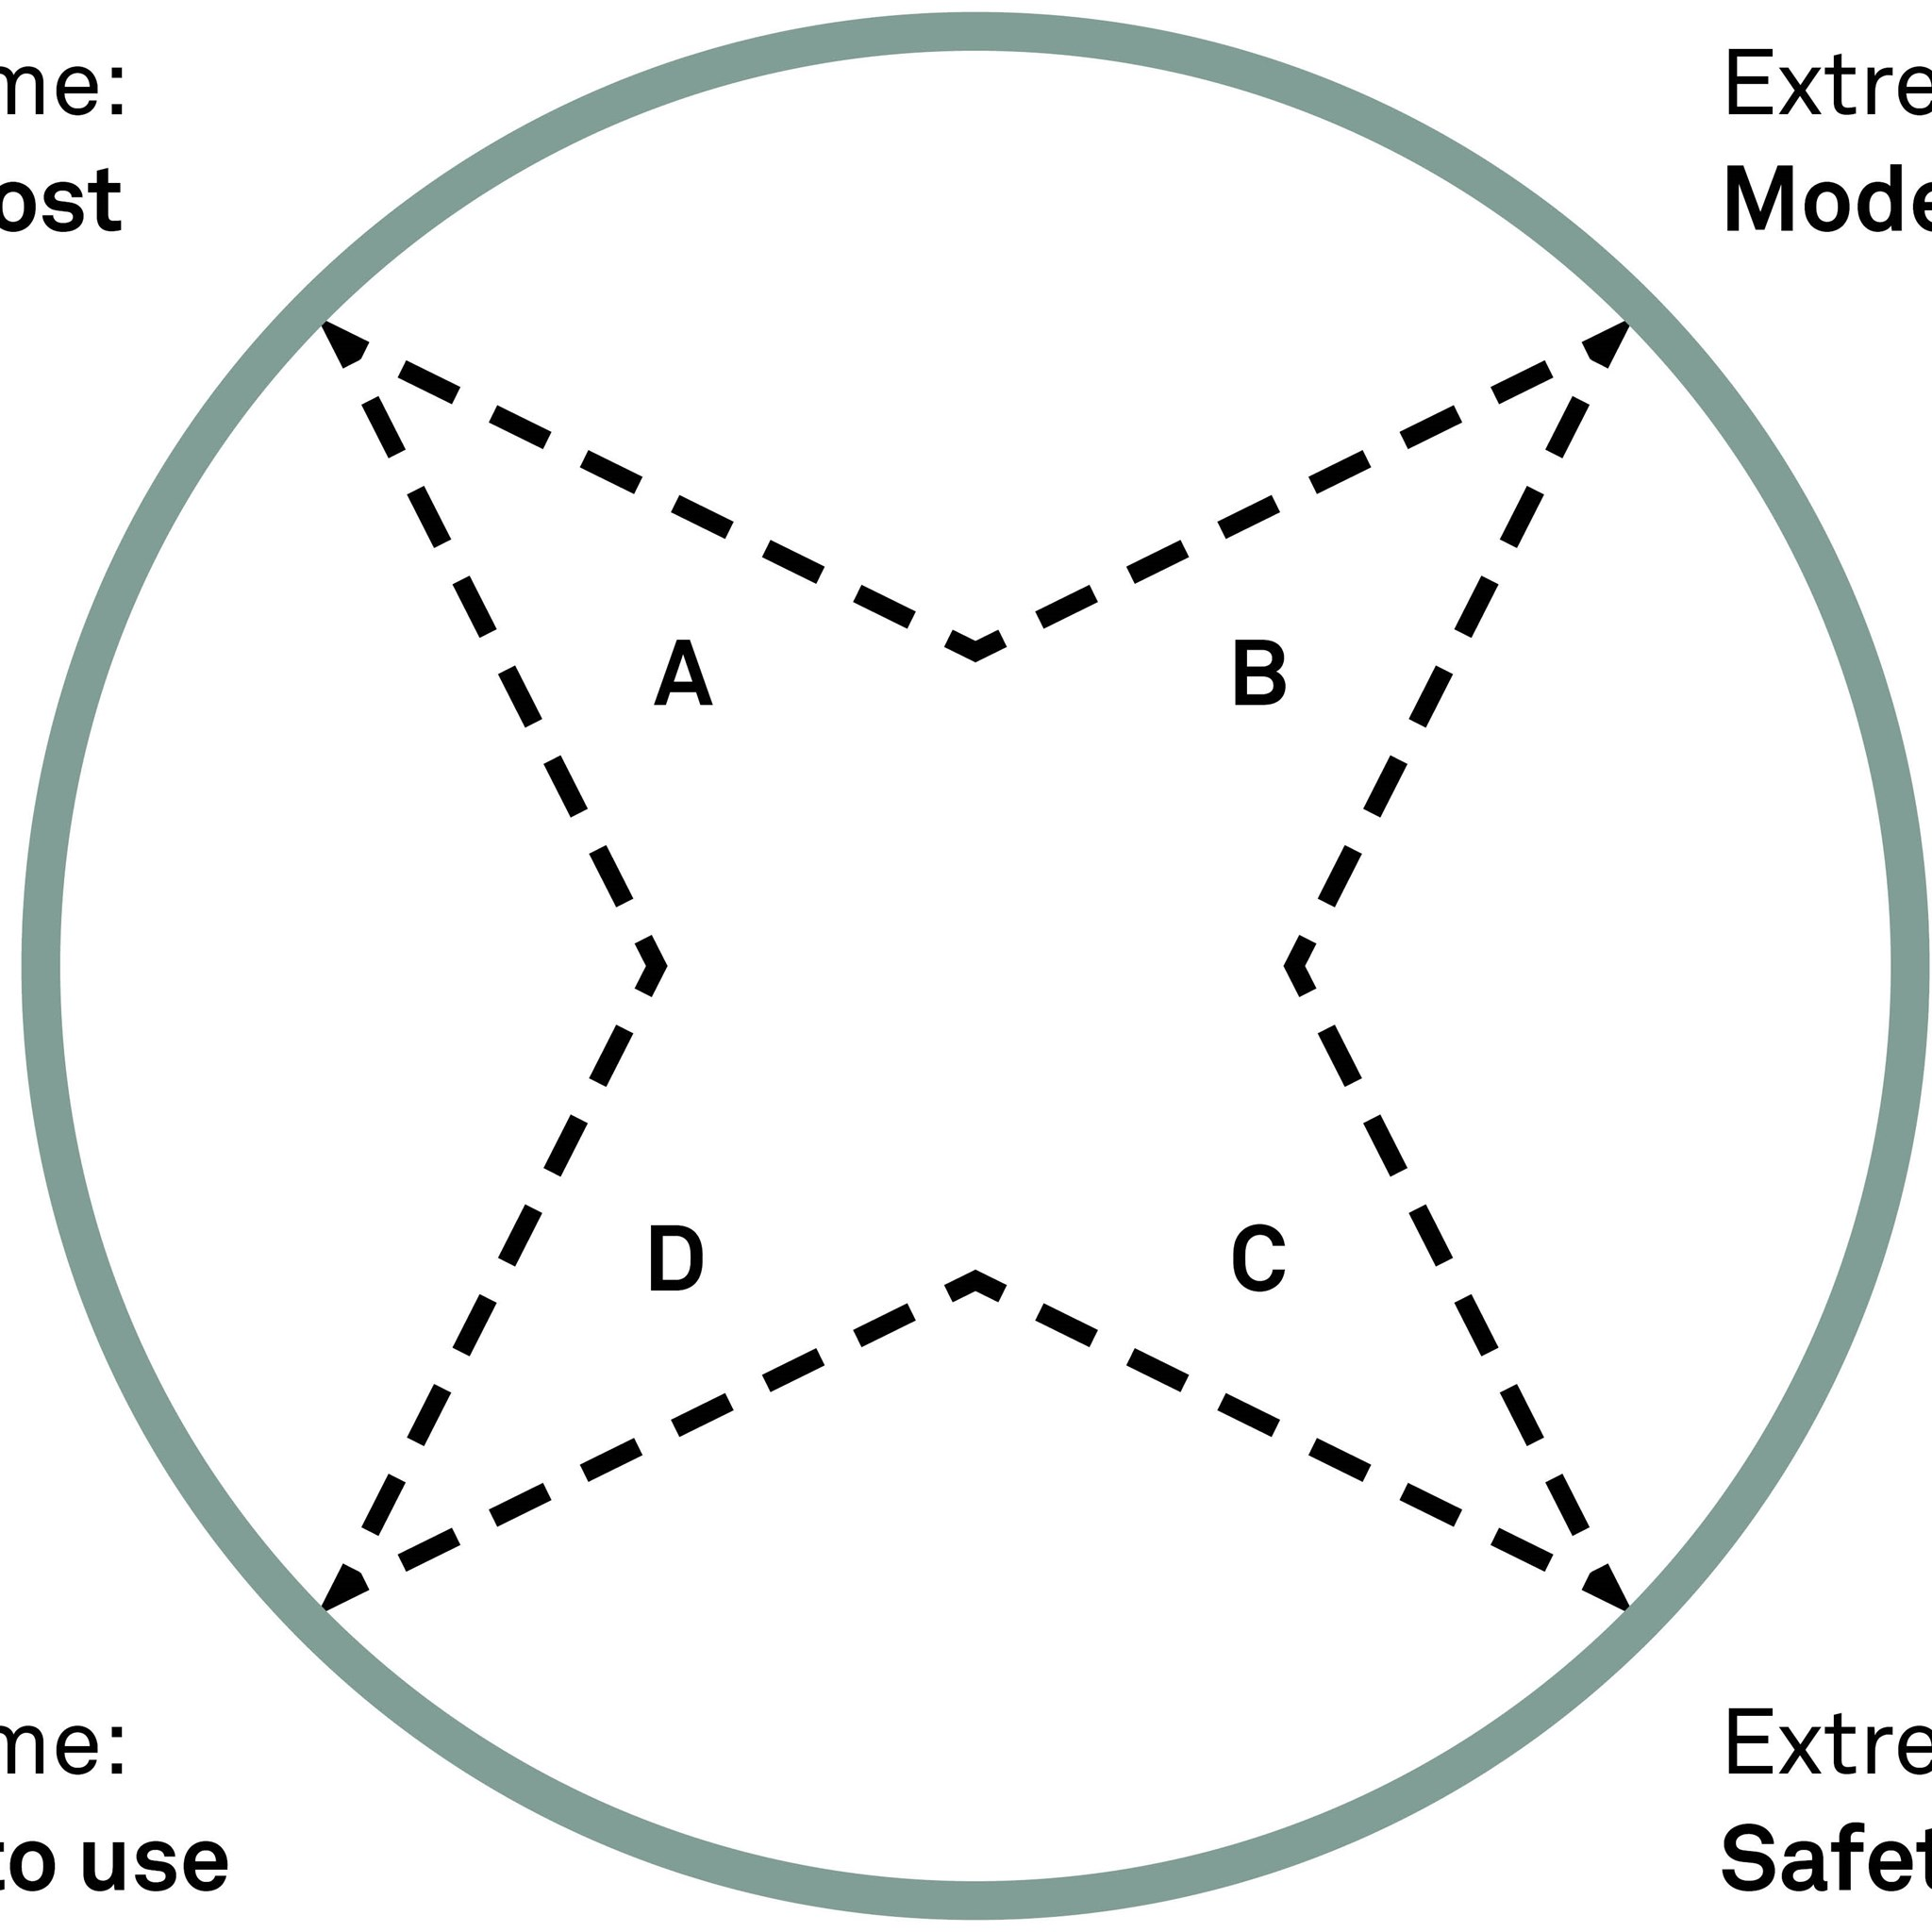 The method: Design for Extreme